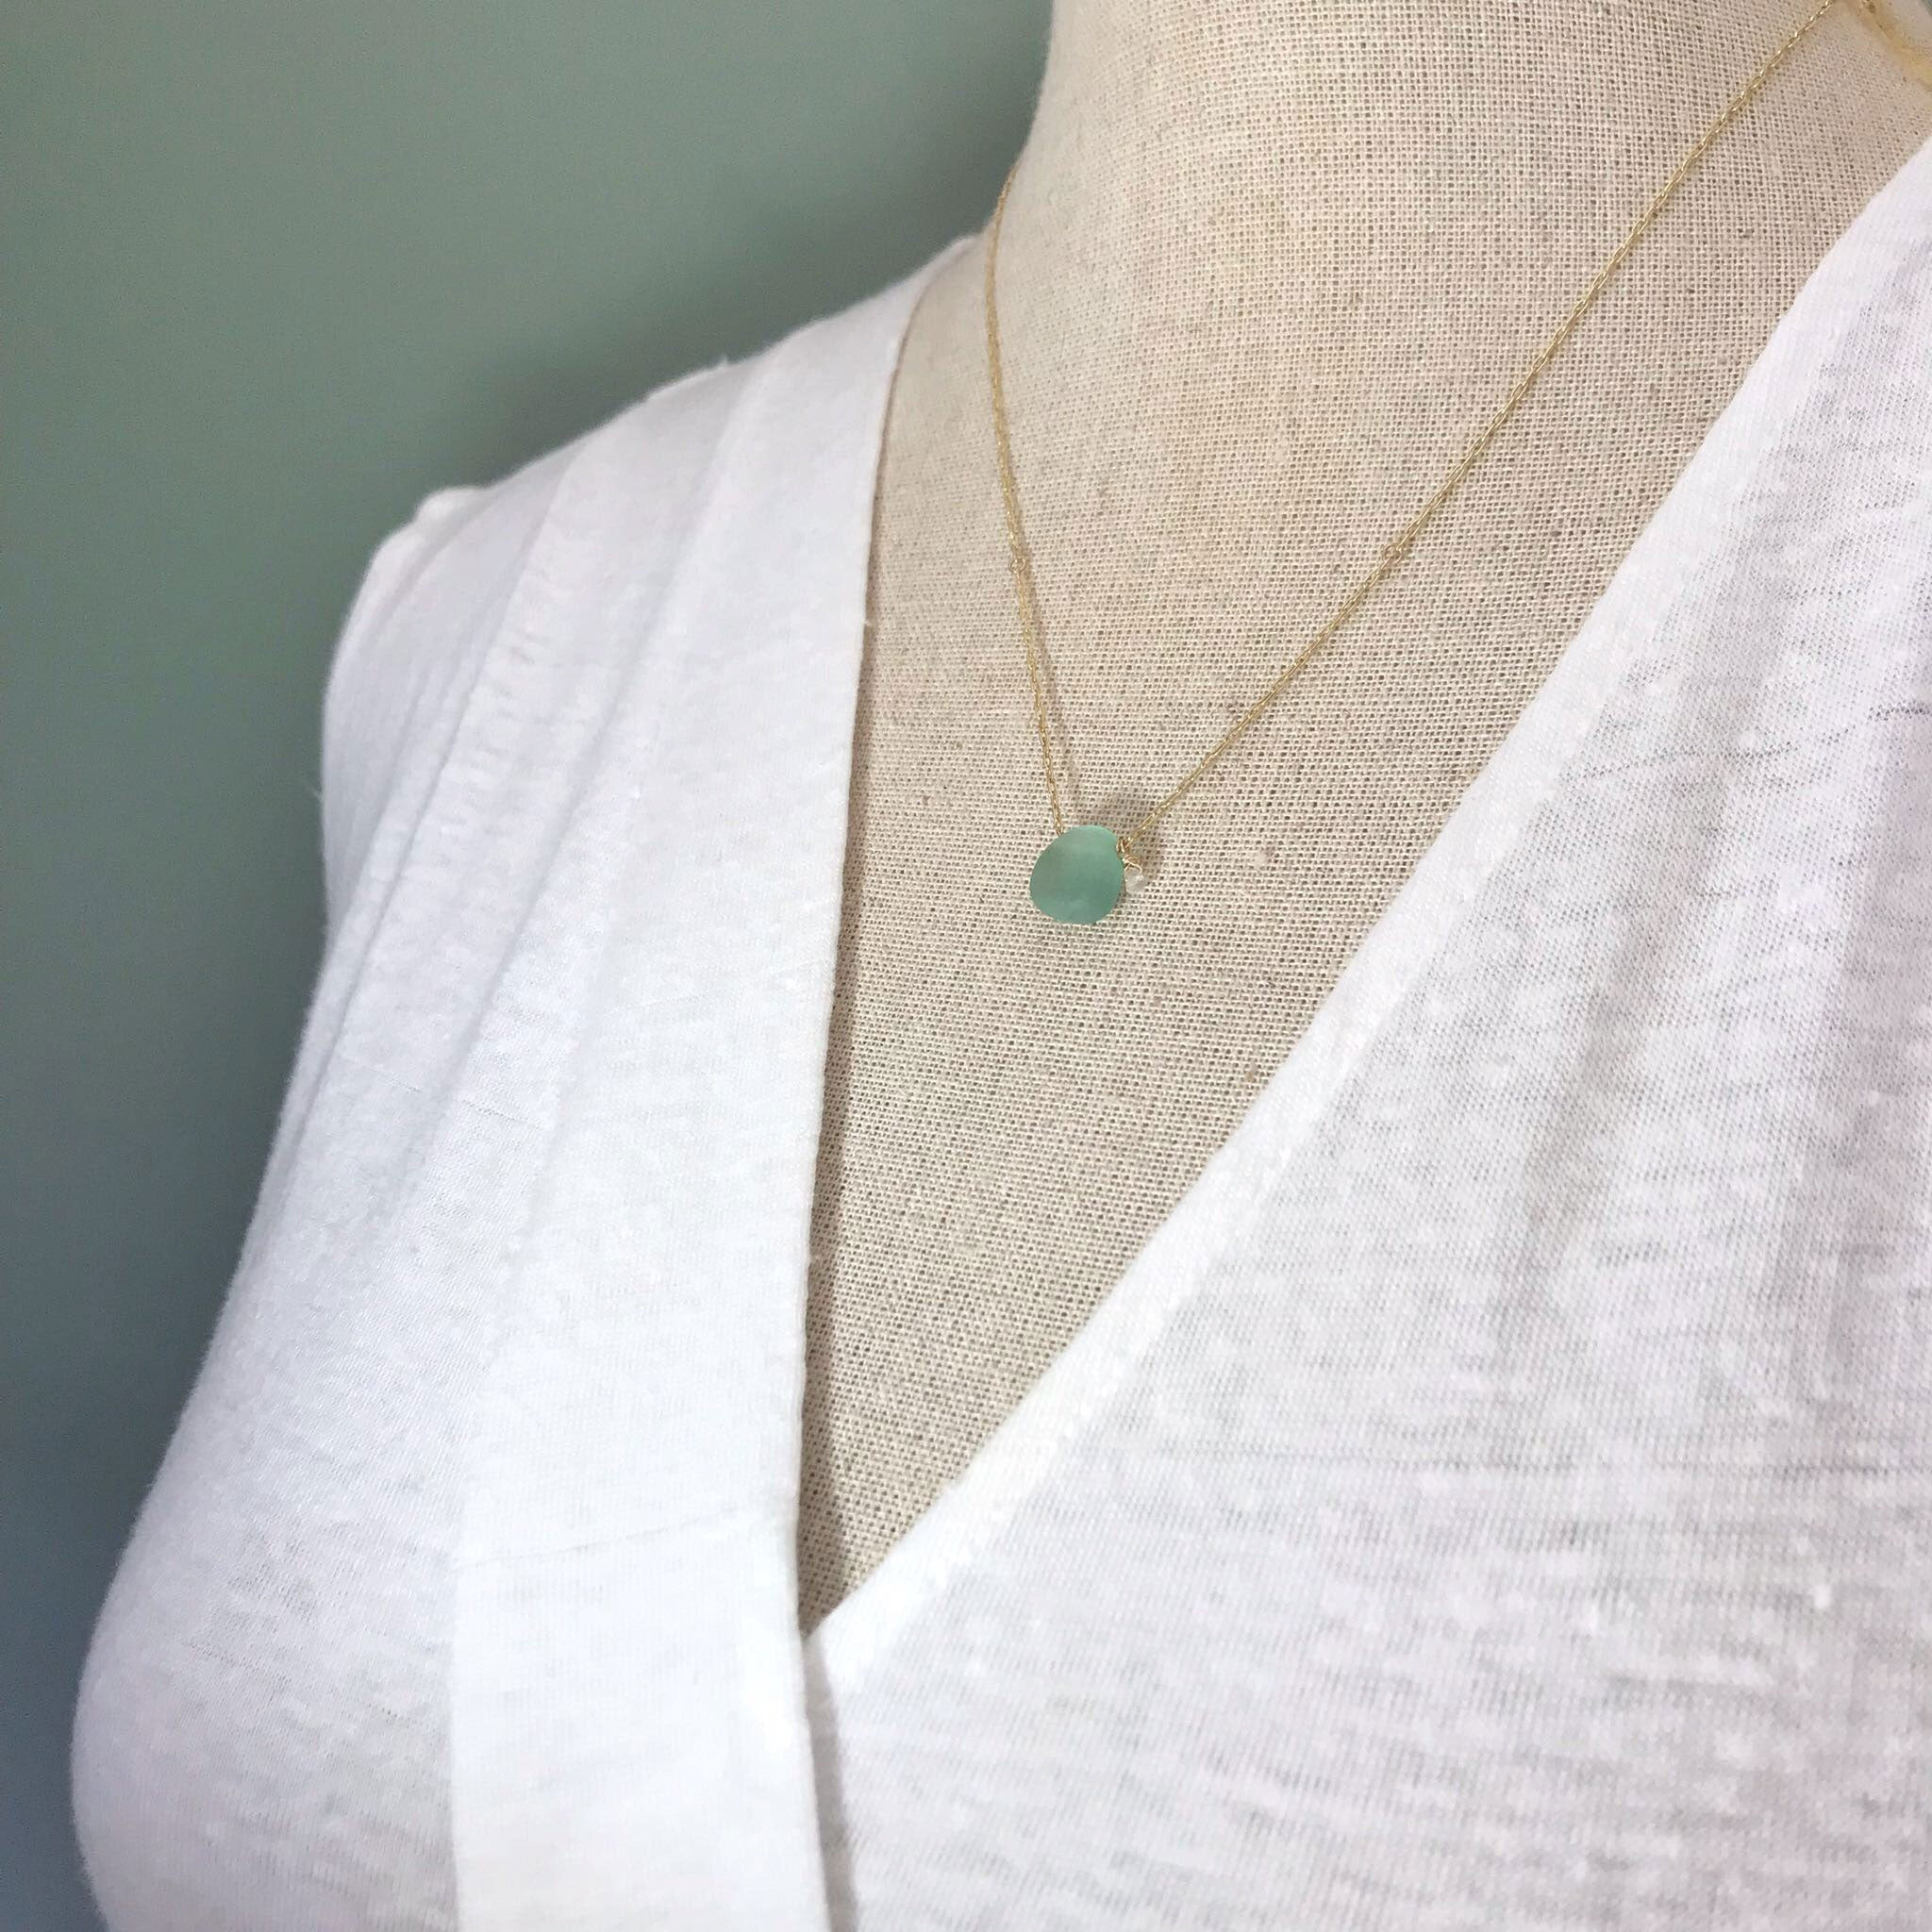 Aqua Seaglass Necklace on Short Gold chain - kriket-broadhurst handcrafted seaglass jewellery